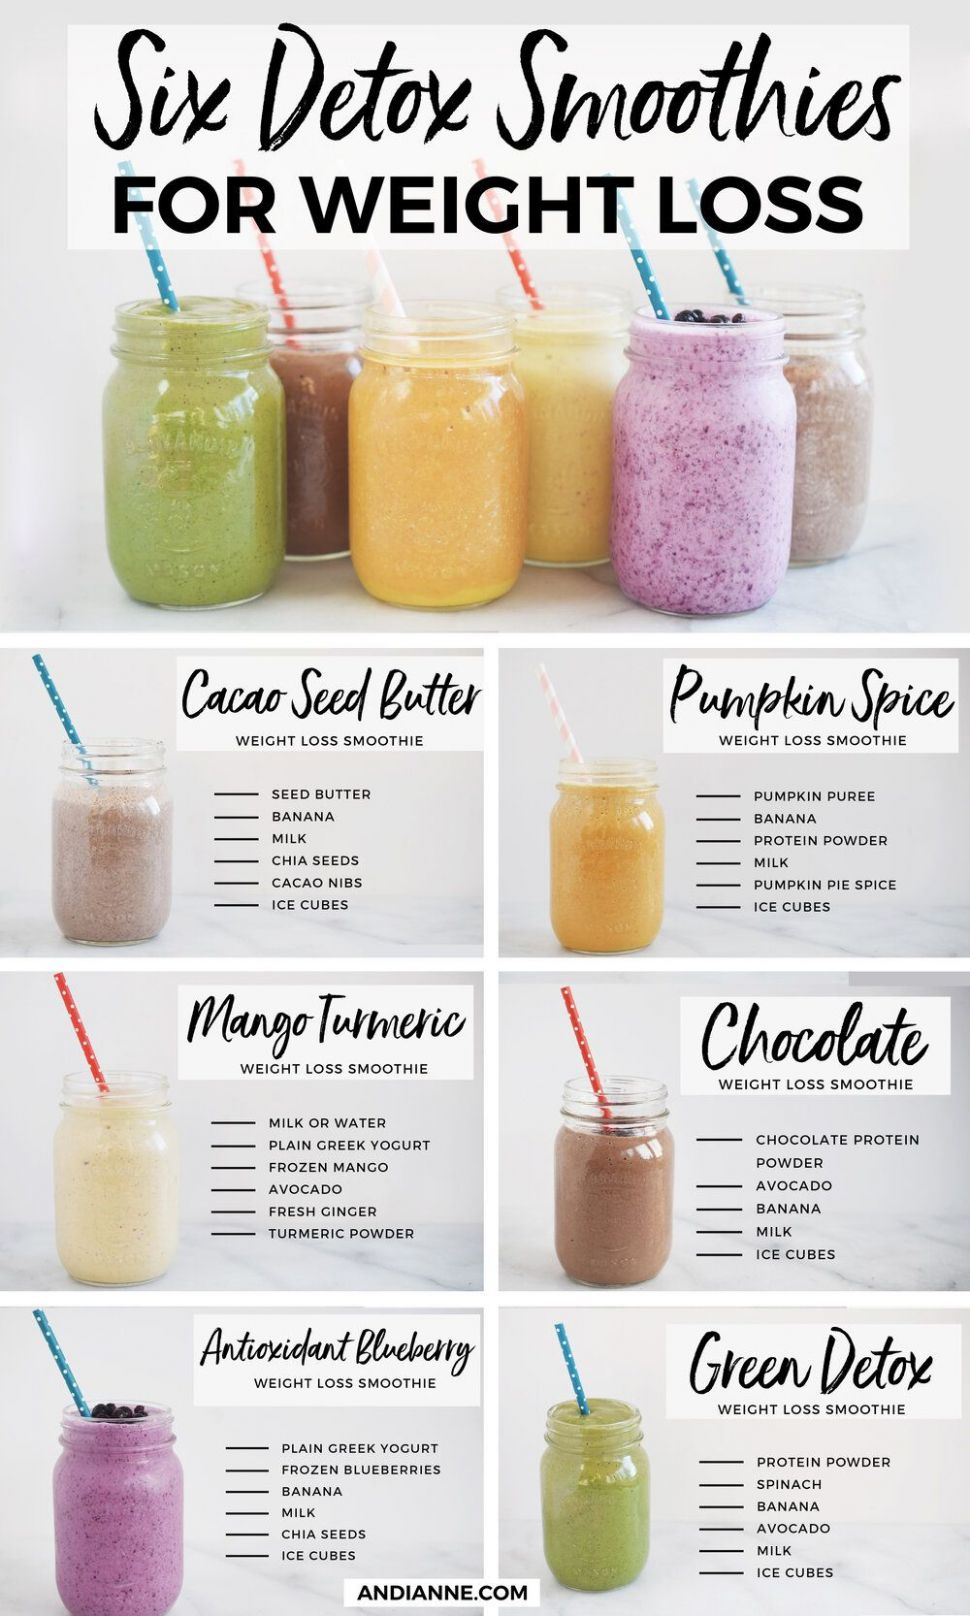 Pin on Recipes - Recipes For Weight Loss With Chia Seeds